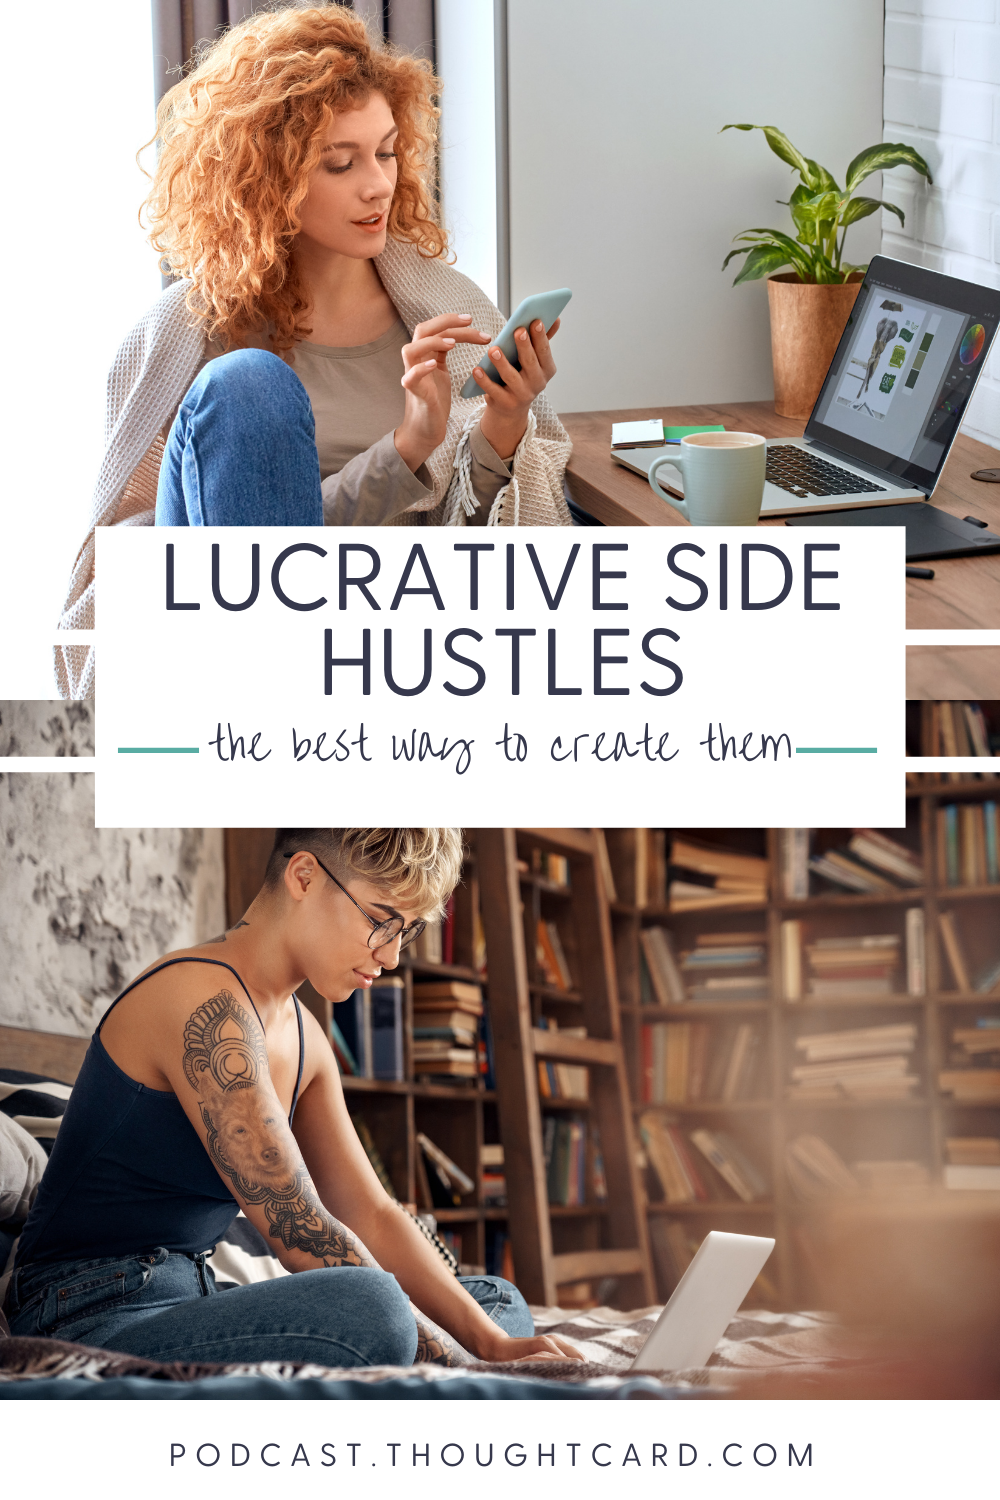 How to find the most lucrative side hustles